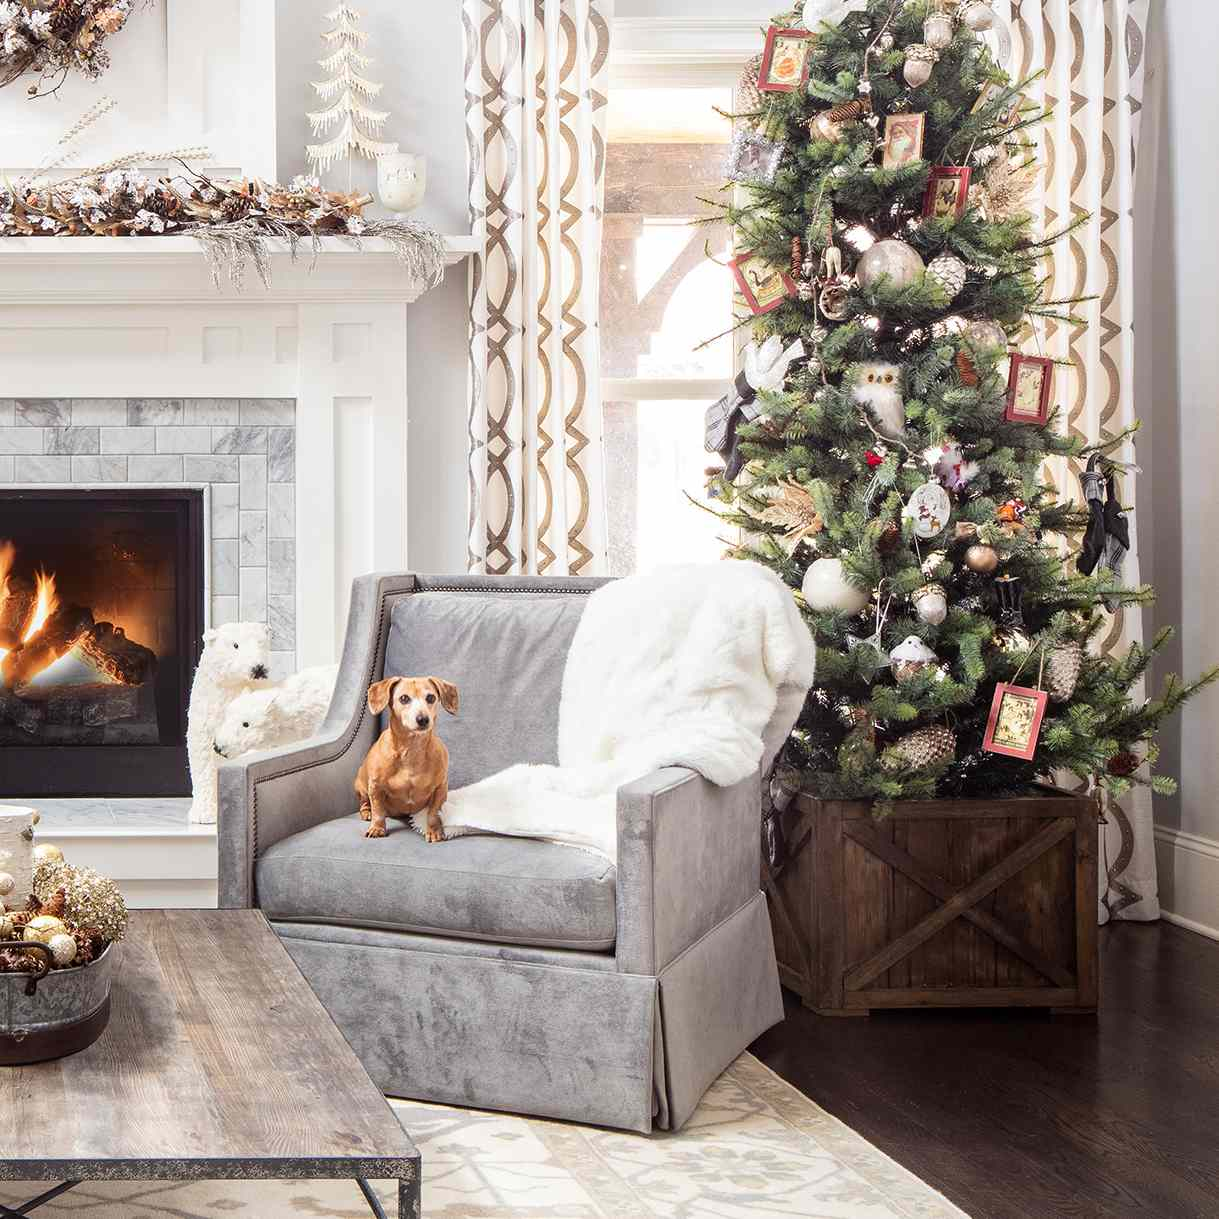 Christmas Decorating Ideas Designers Swear By_2 christmas decorating ideas Christmas Decorating Ideas Designers Swear By Christmas Decorating Ideas Designers Swear By 2